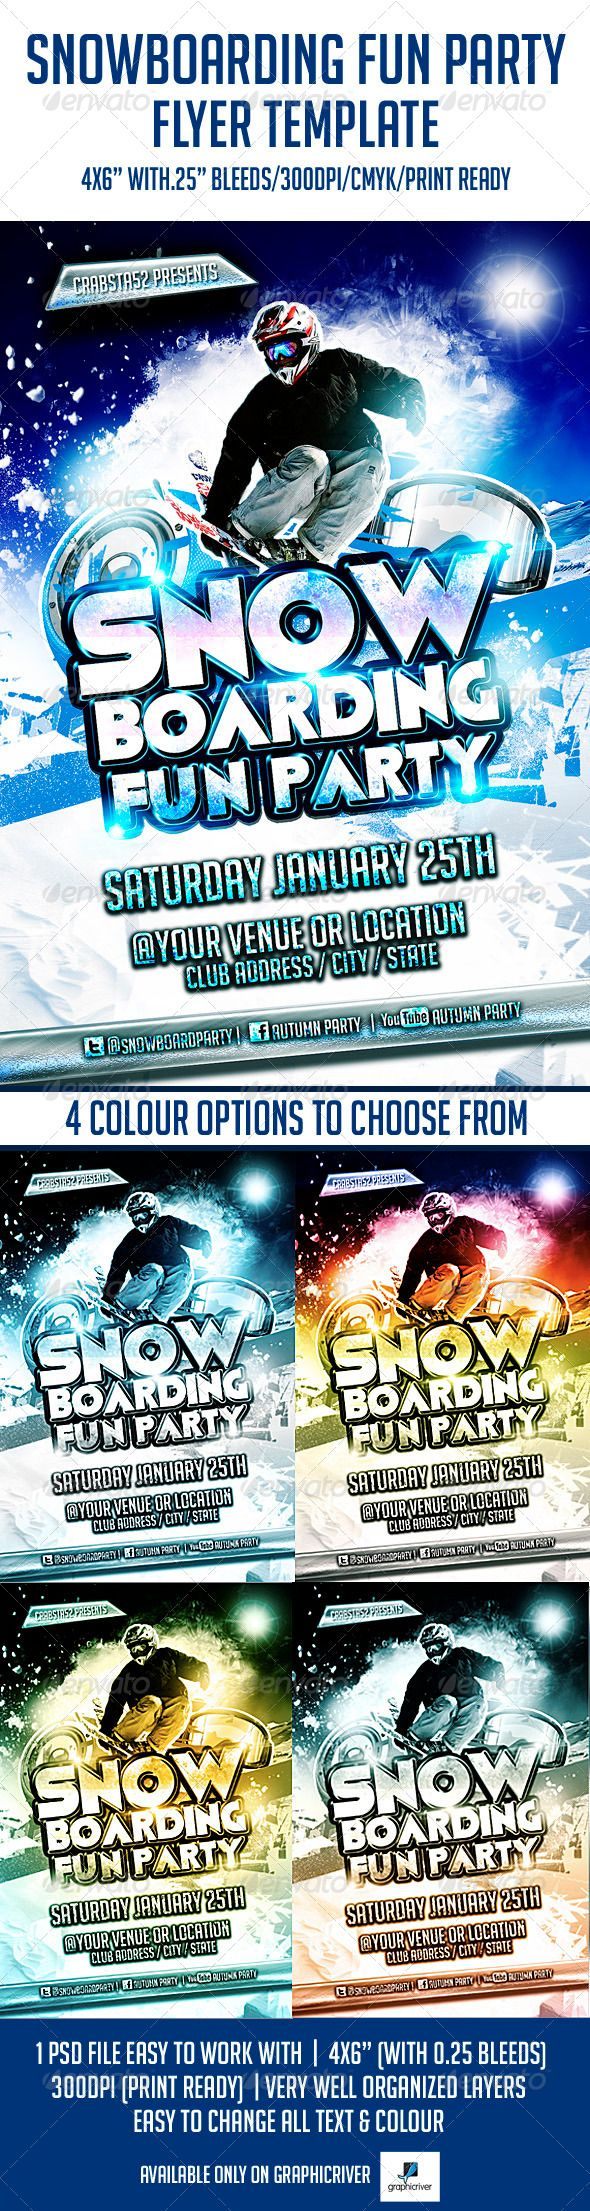 best images about print templates fonts flyer snowboarding fun party flyer template